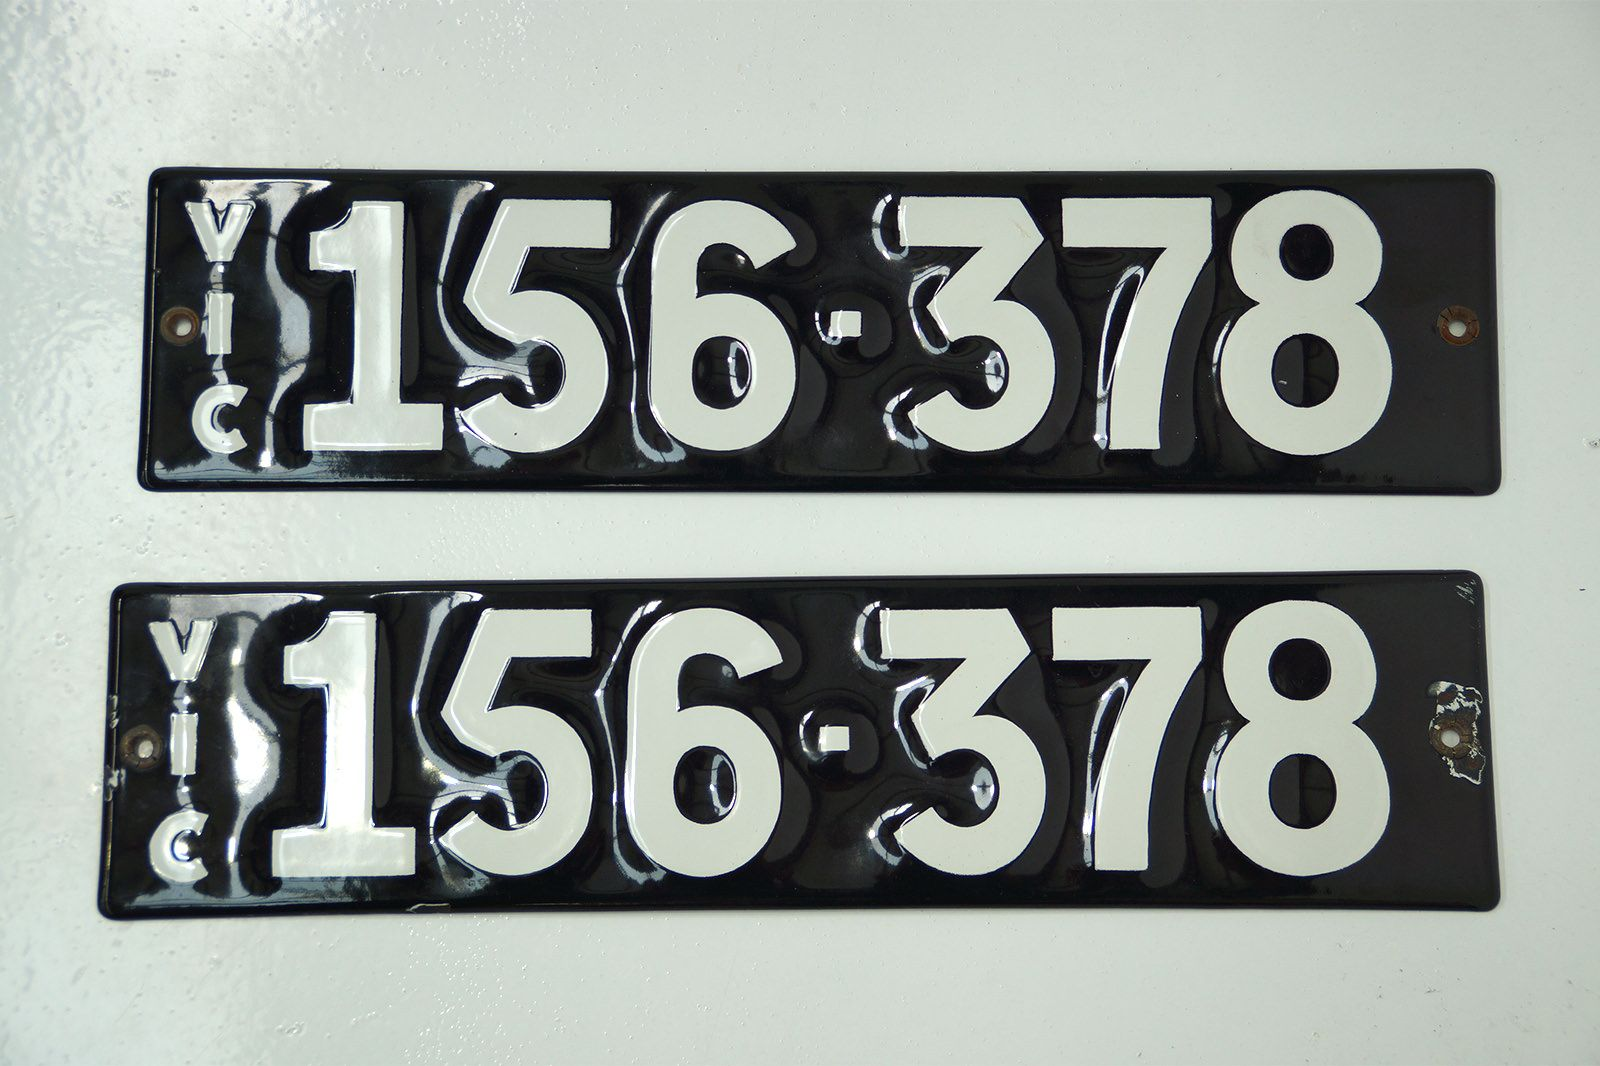 Number Plates - Victorian Numerical Number Plates '156-378'